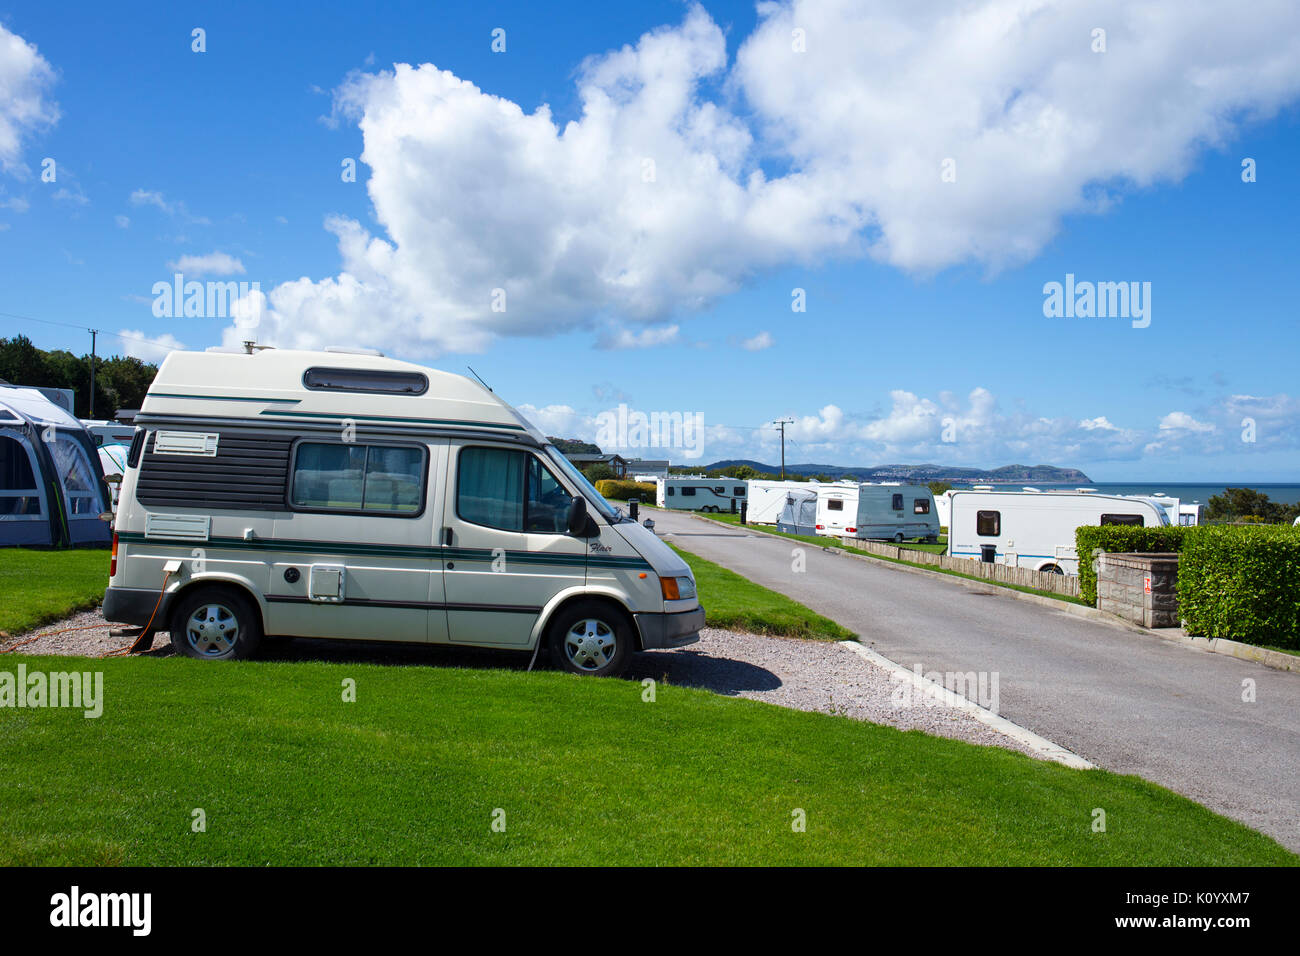 Ford Flair auto sleeper on Bron-Y-Wendon campsite in Llandddulas Wales UK - Stock Image